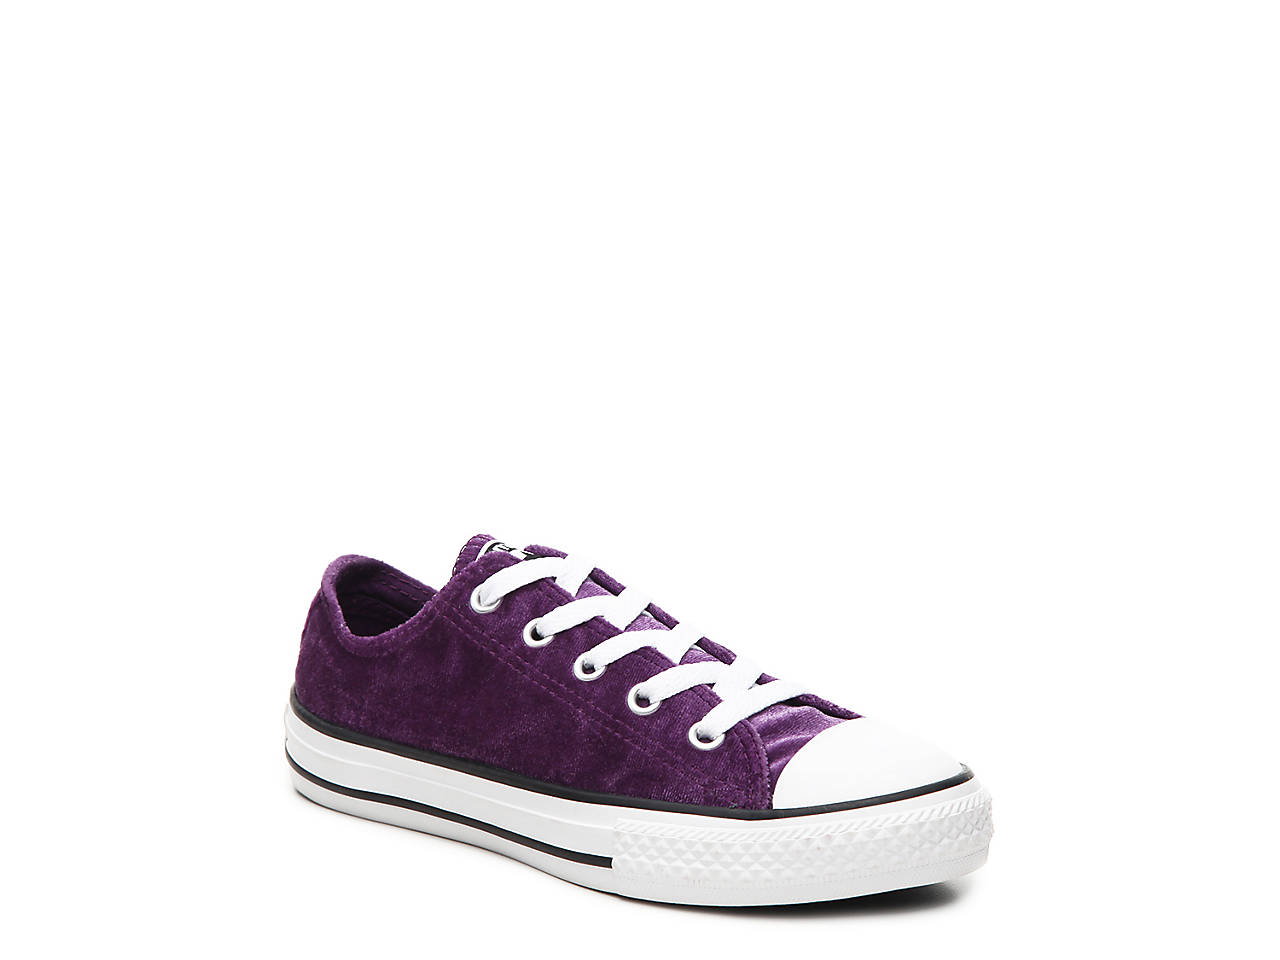 ec5ebfb5fd8a Converse Chuck Taylor All Star Velvet Toddler   Youth Sneaker Kids ...